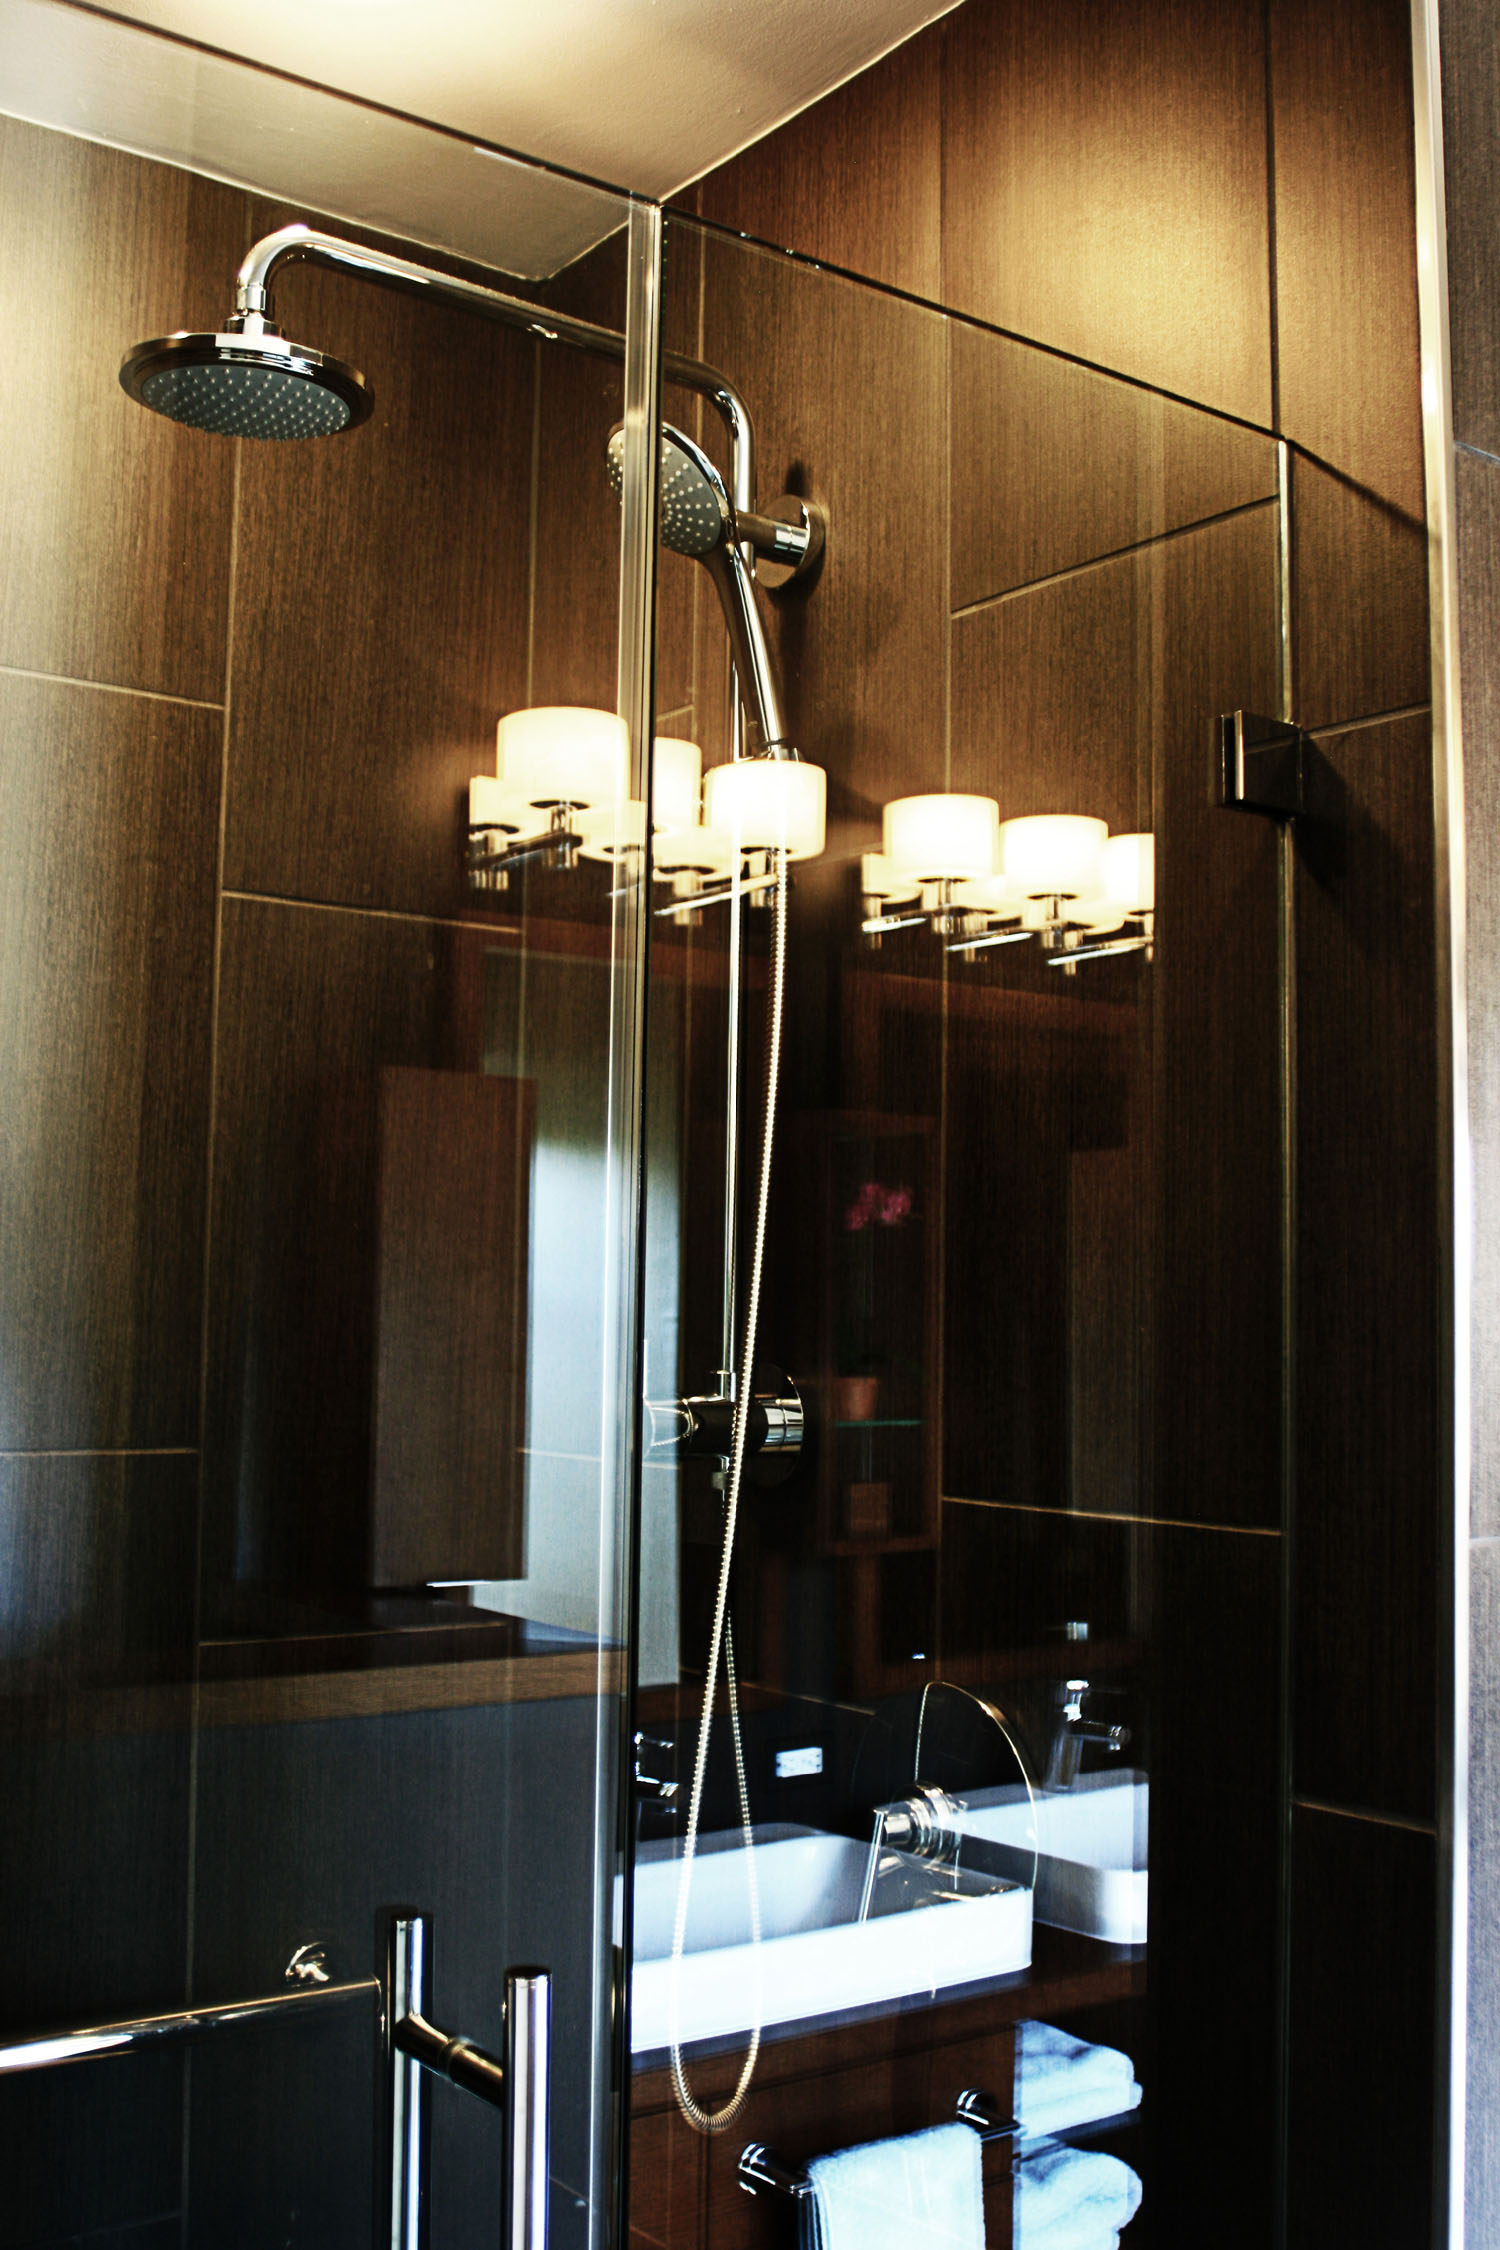 13 masterbath view of shower.jpg